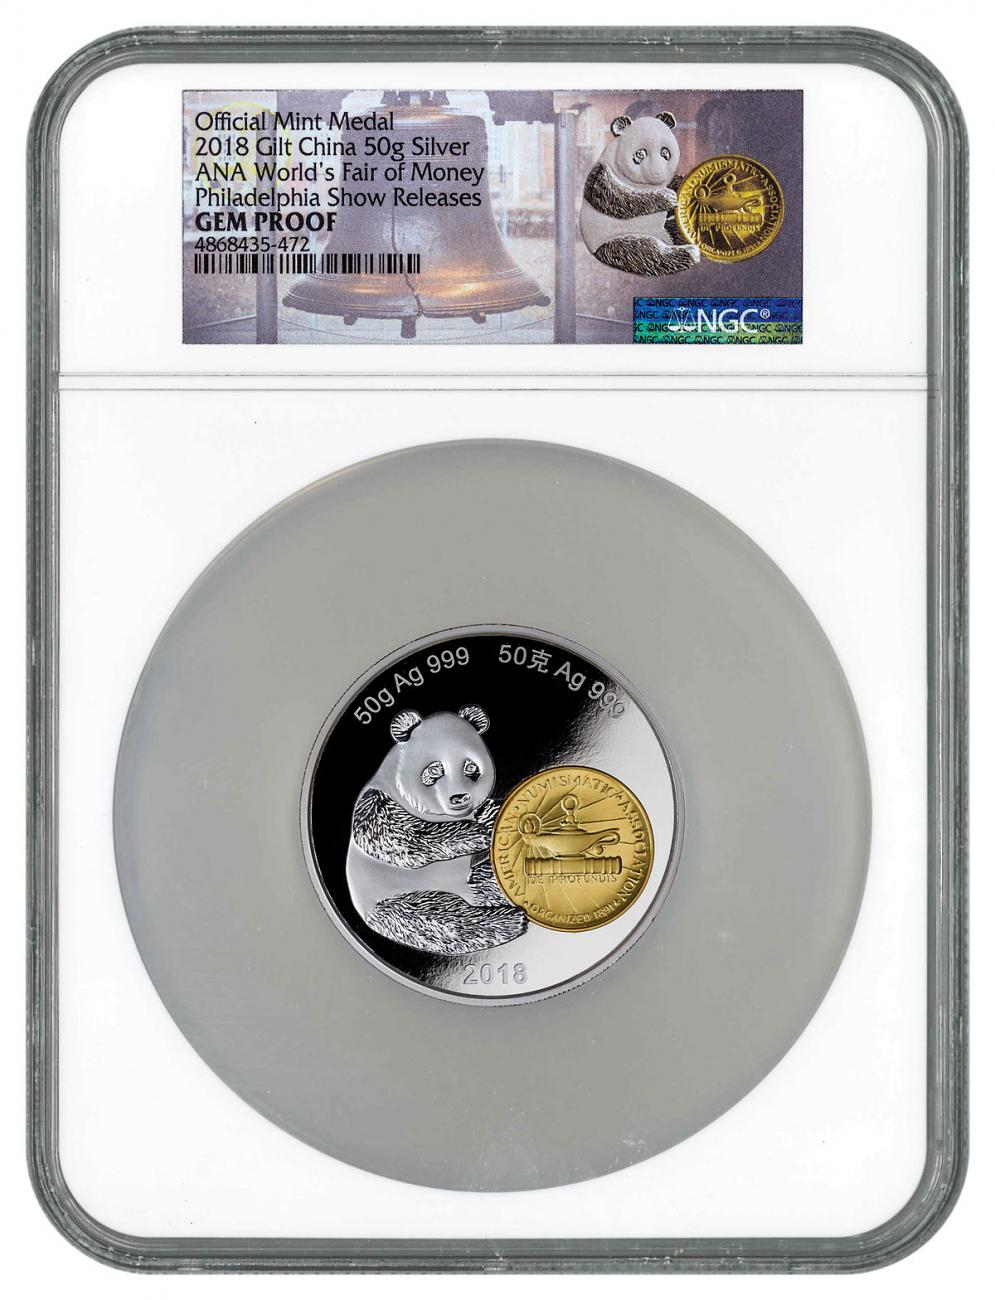 2018 China Philadelphia ANA World's Fair of Money Show Panda 50 g Silver Gilt Proof Medal NGC GEM Proof Philadelphia Show Releases World Money Fair Label